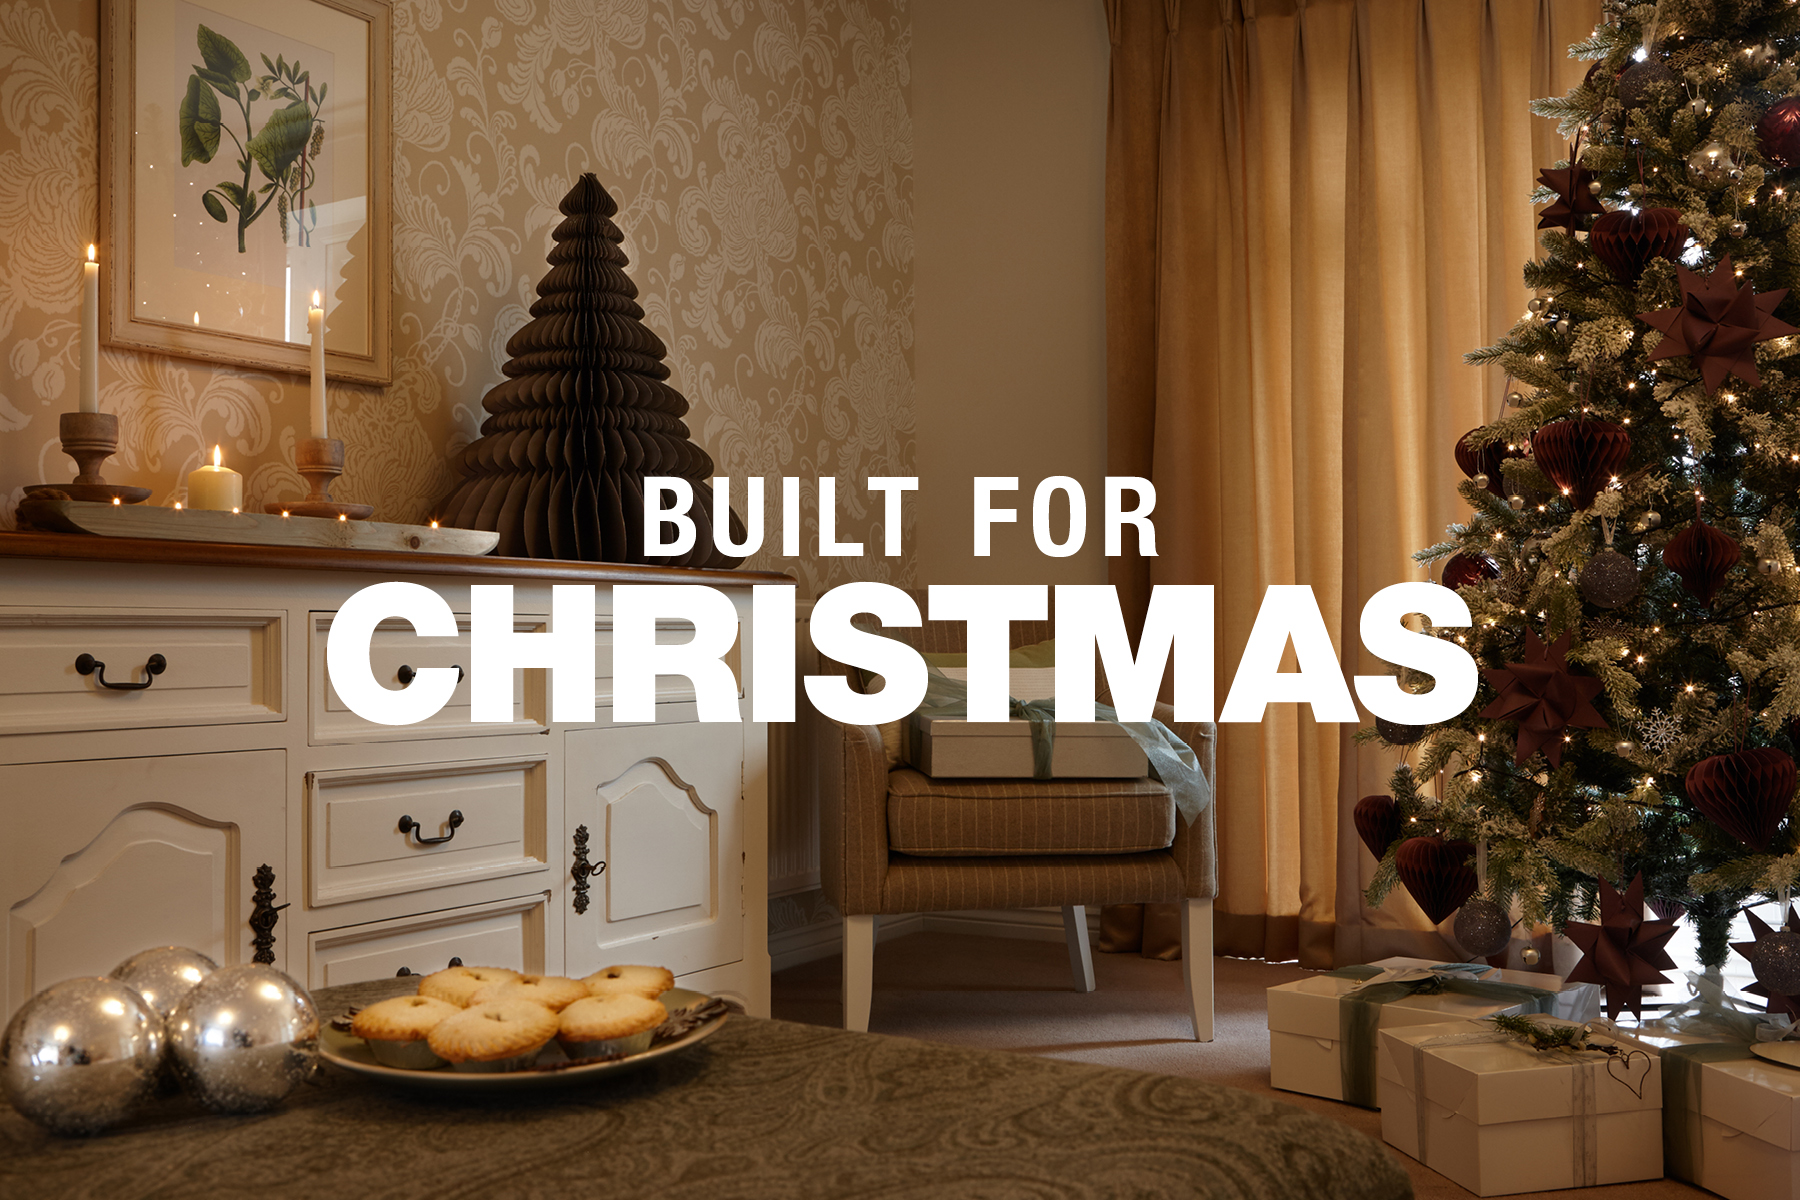 All Sites - Built for Christmas Graphic 4